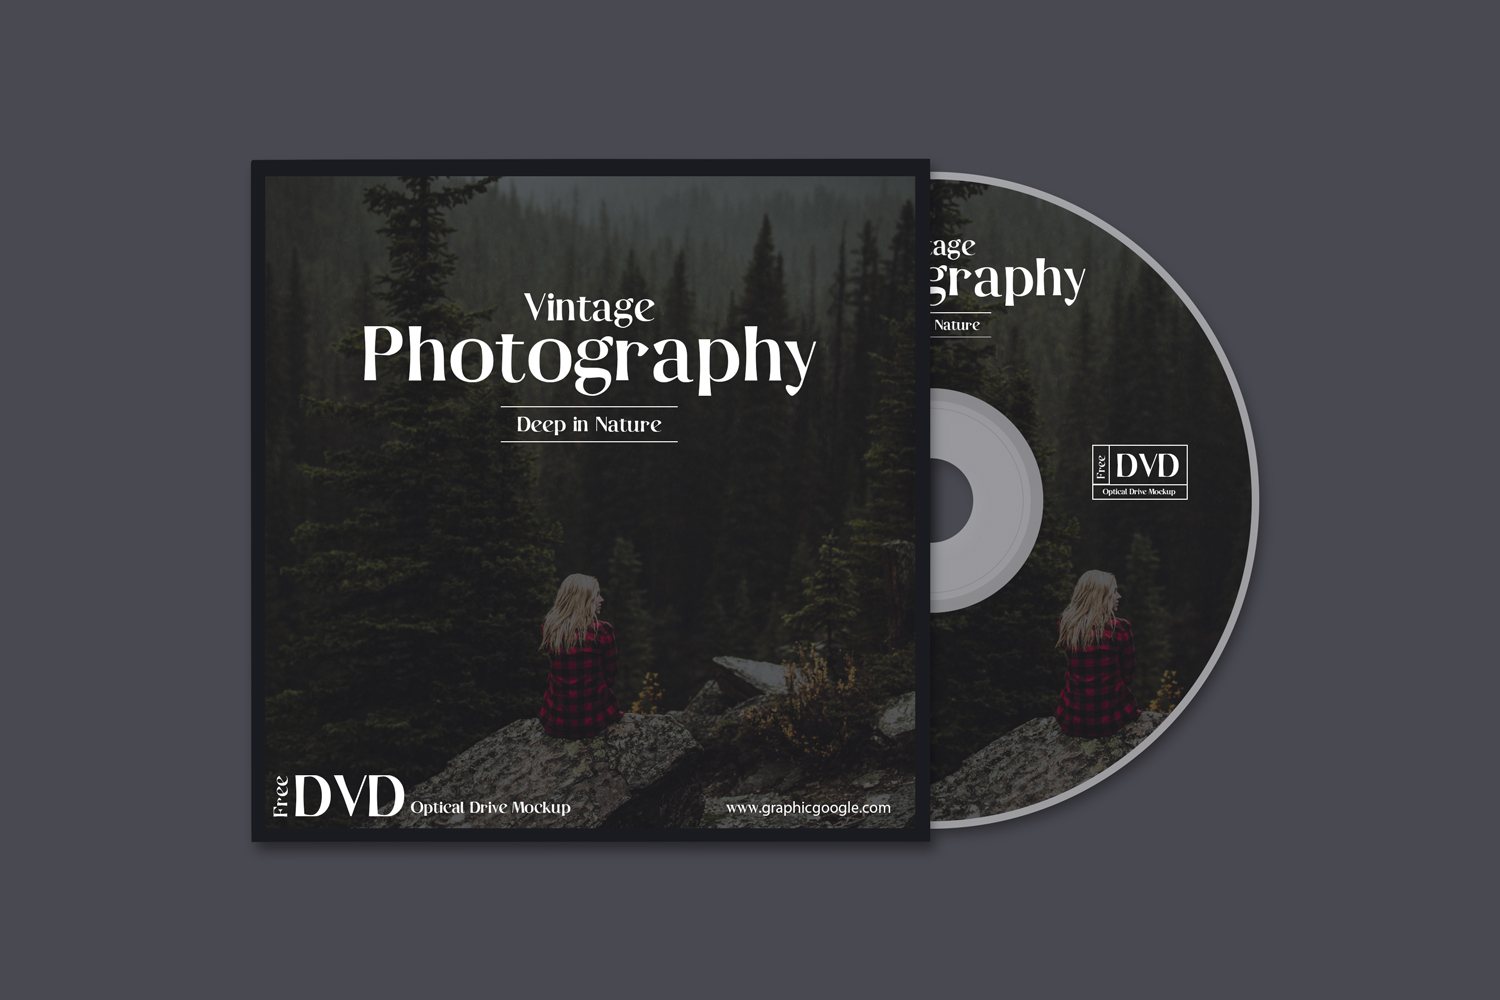 Free-DVD-Optical-Drive-Mockup